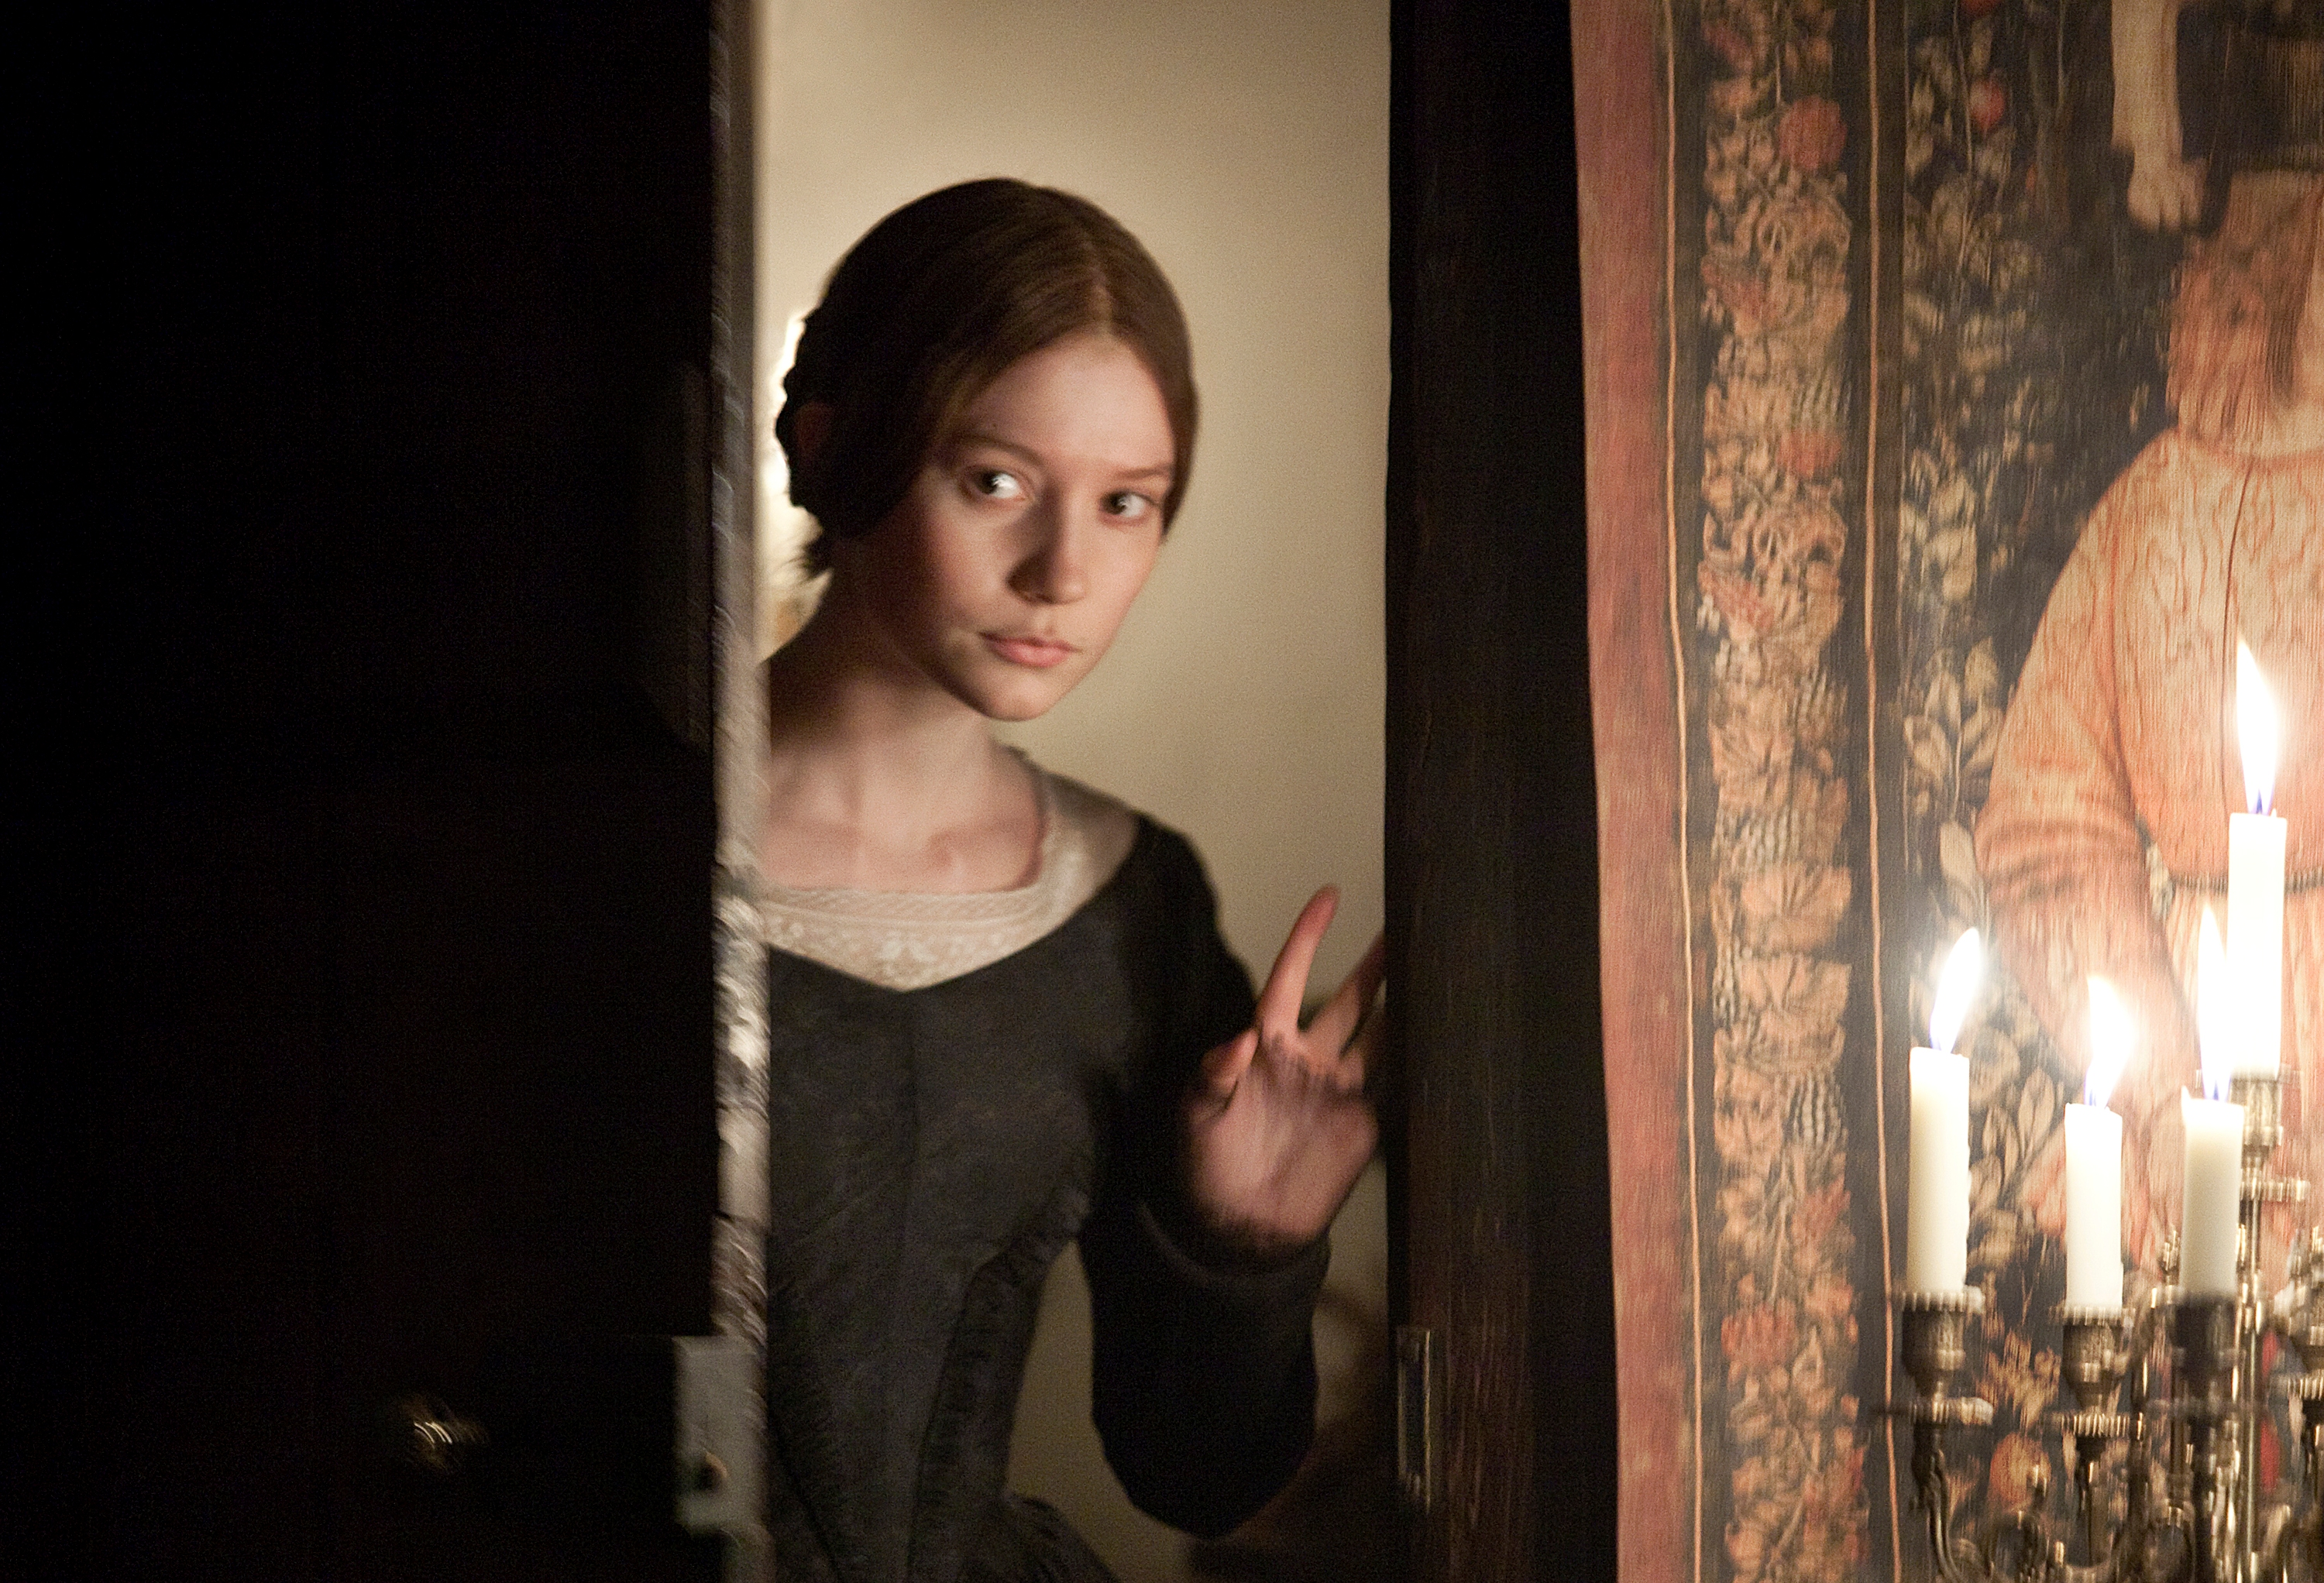 Mia Wasikowska stars as the title character of the romantic drama JANE EYRE, a 2011 Focus Features release directed by Cary Fukunaga.